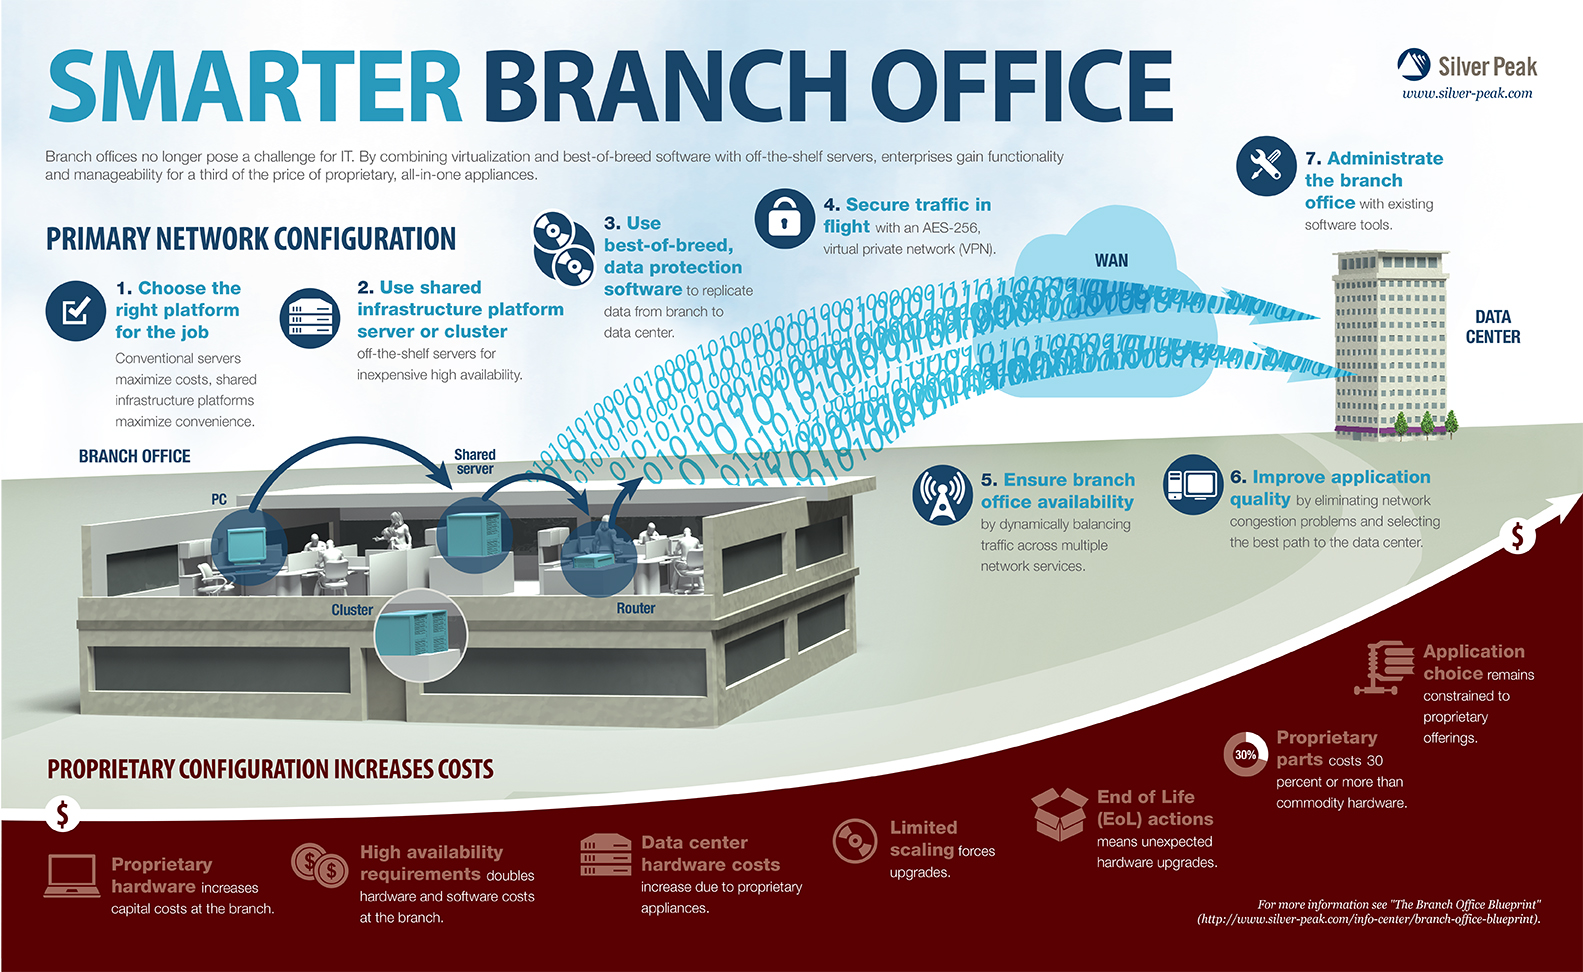 Building a Smarter Branch Office